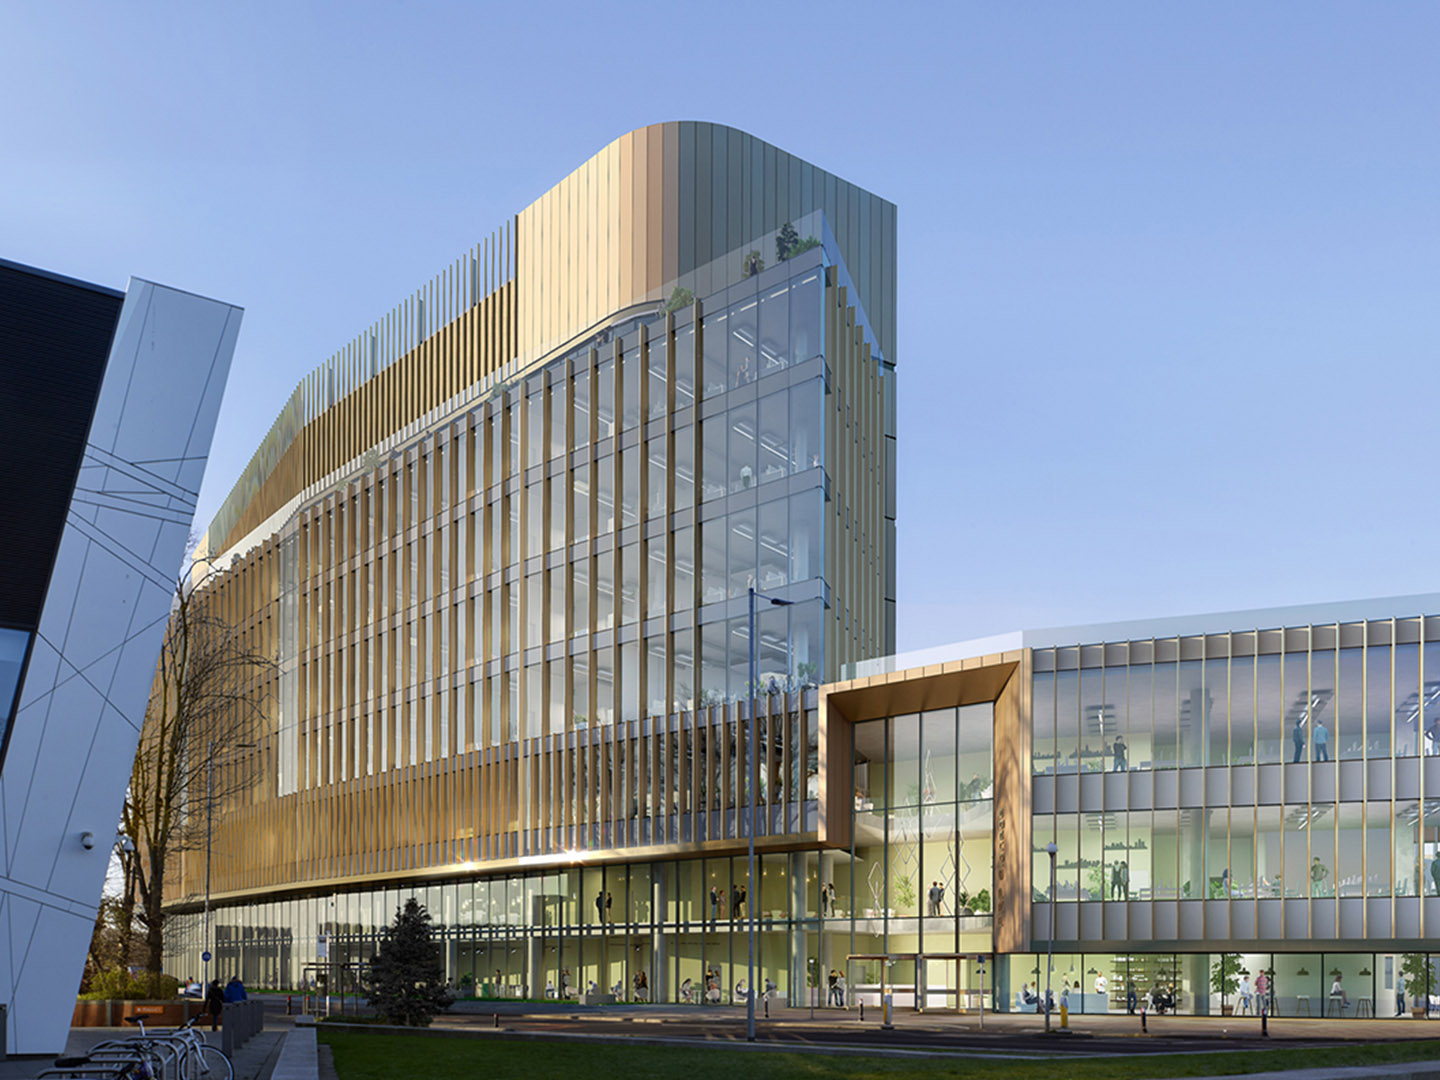 THE CHRISTIE NHS FOUNDATION TRUST BIOMEDICAL CENTRE, MANCHESTER